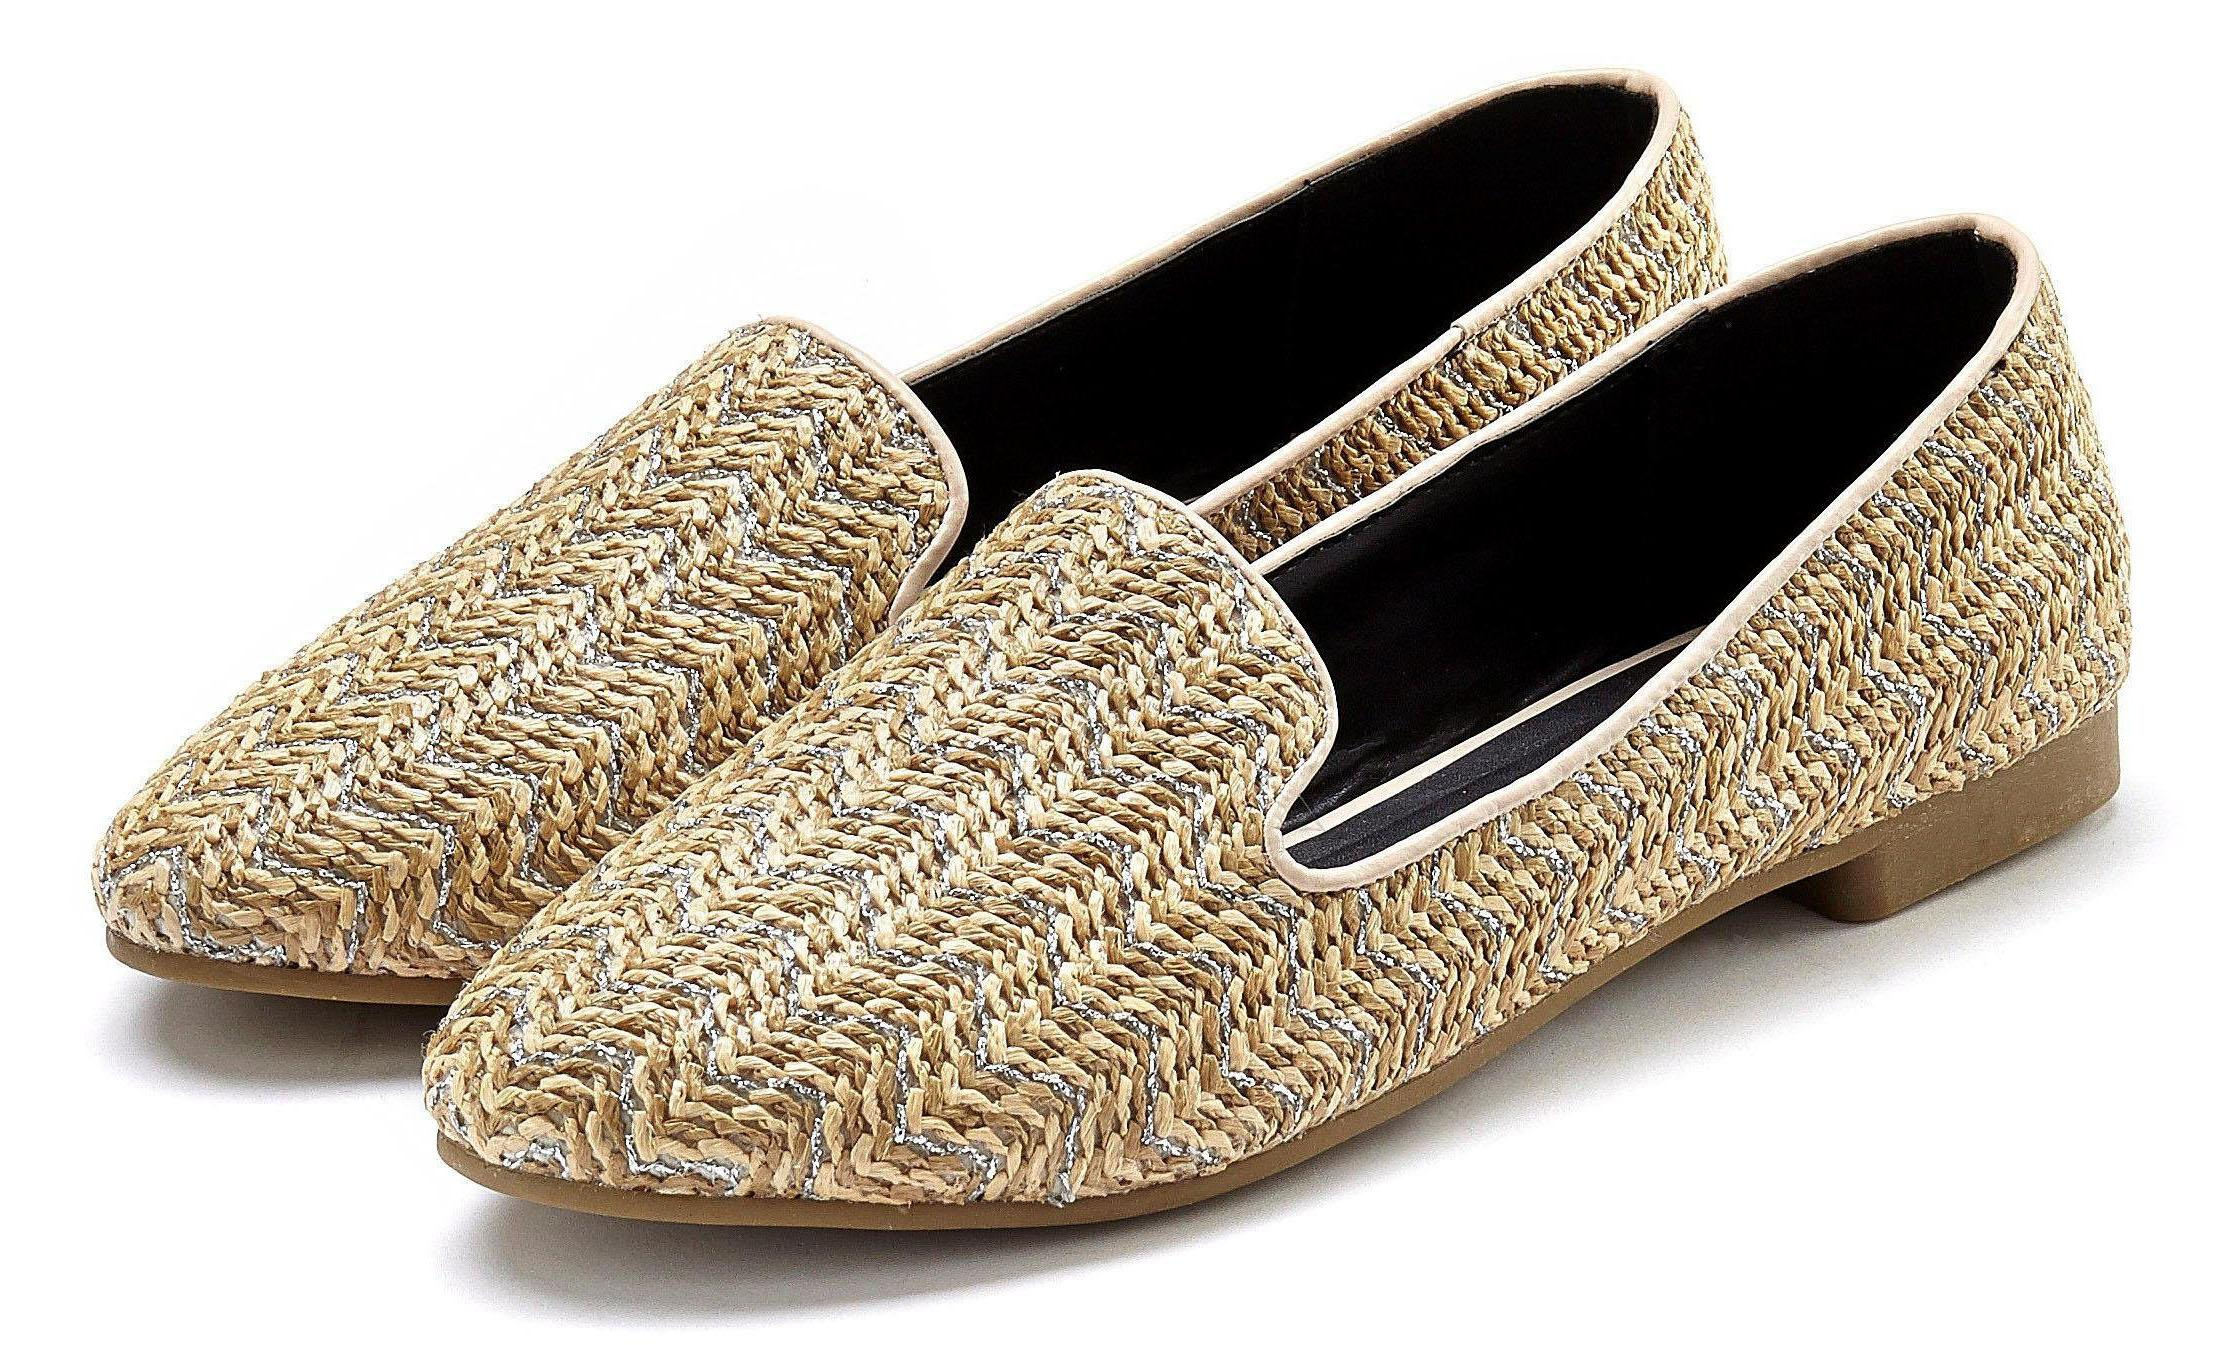 LASCANA Slipper